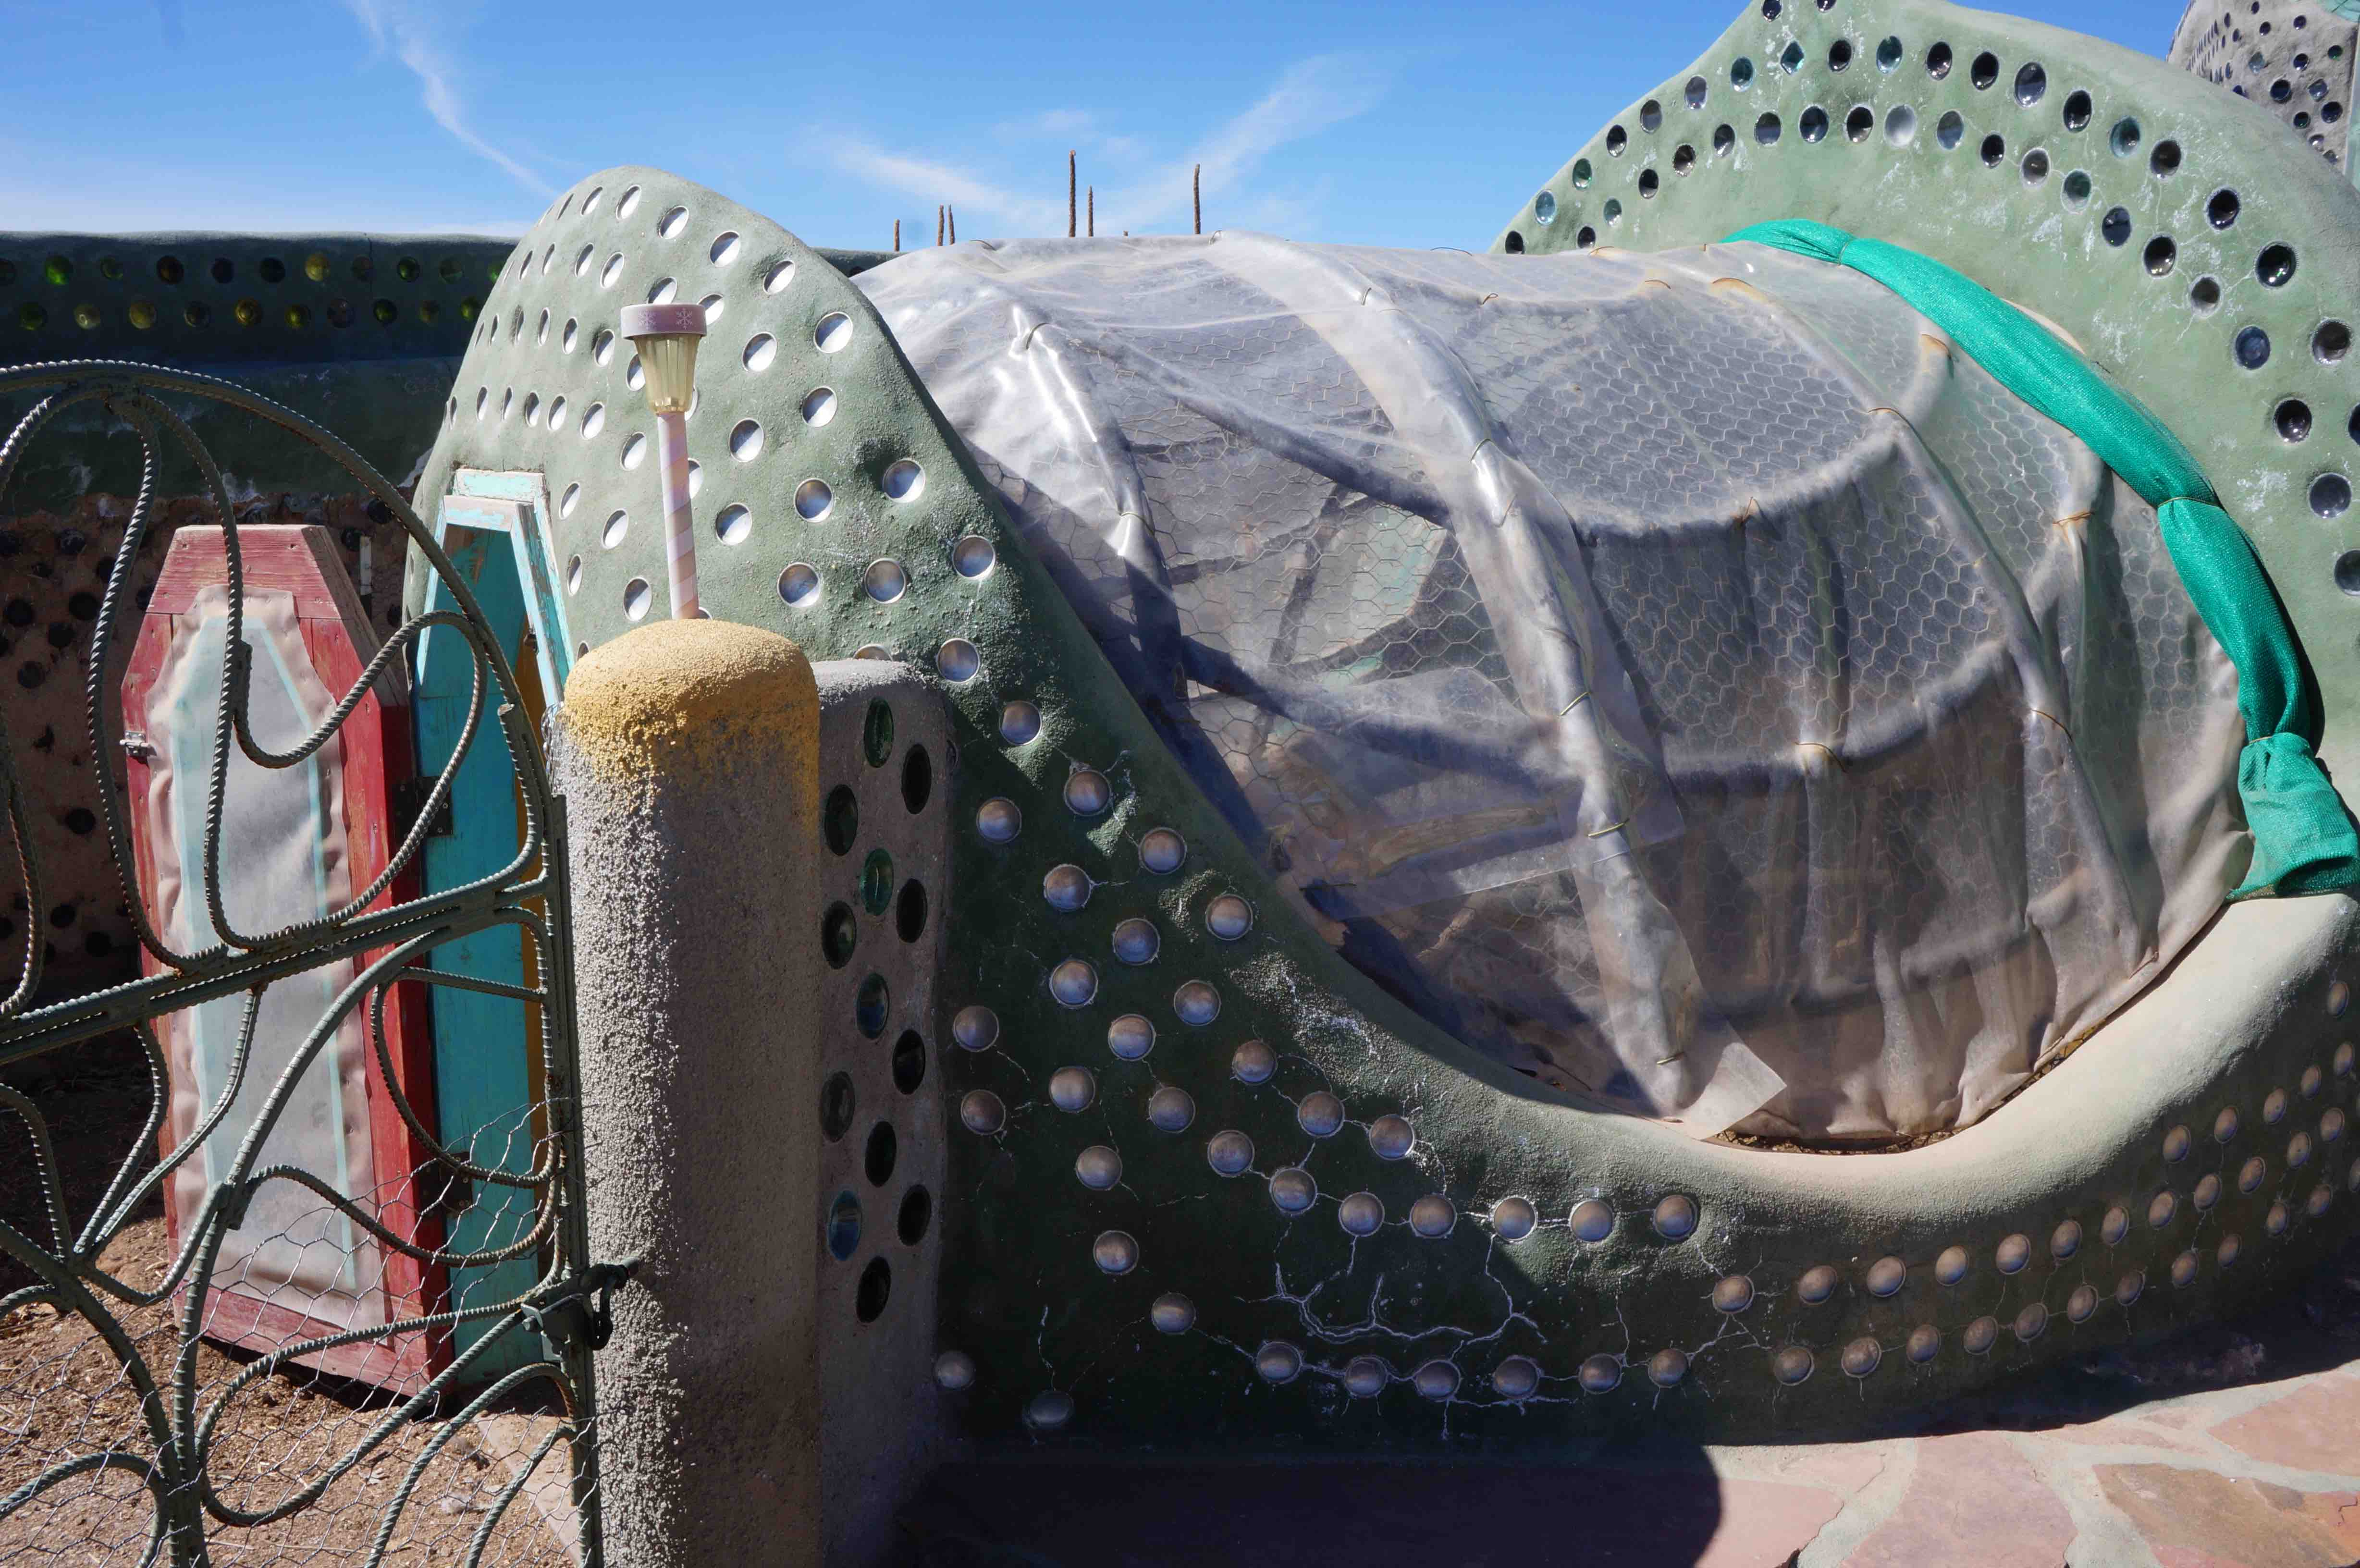 Building Earthships In Taos Electrical Rough Wiring Of Earthship Tire Walls Pictures To Pin On After The Tour We Were Hanging Out Front Phoenix For A While Before Getting Lunch And Spending Rest Day